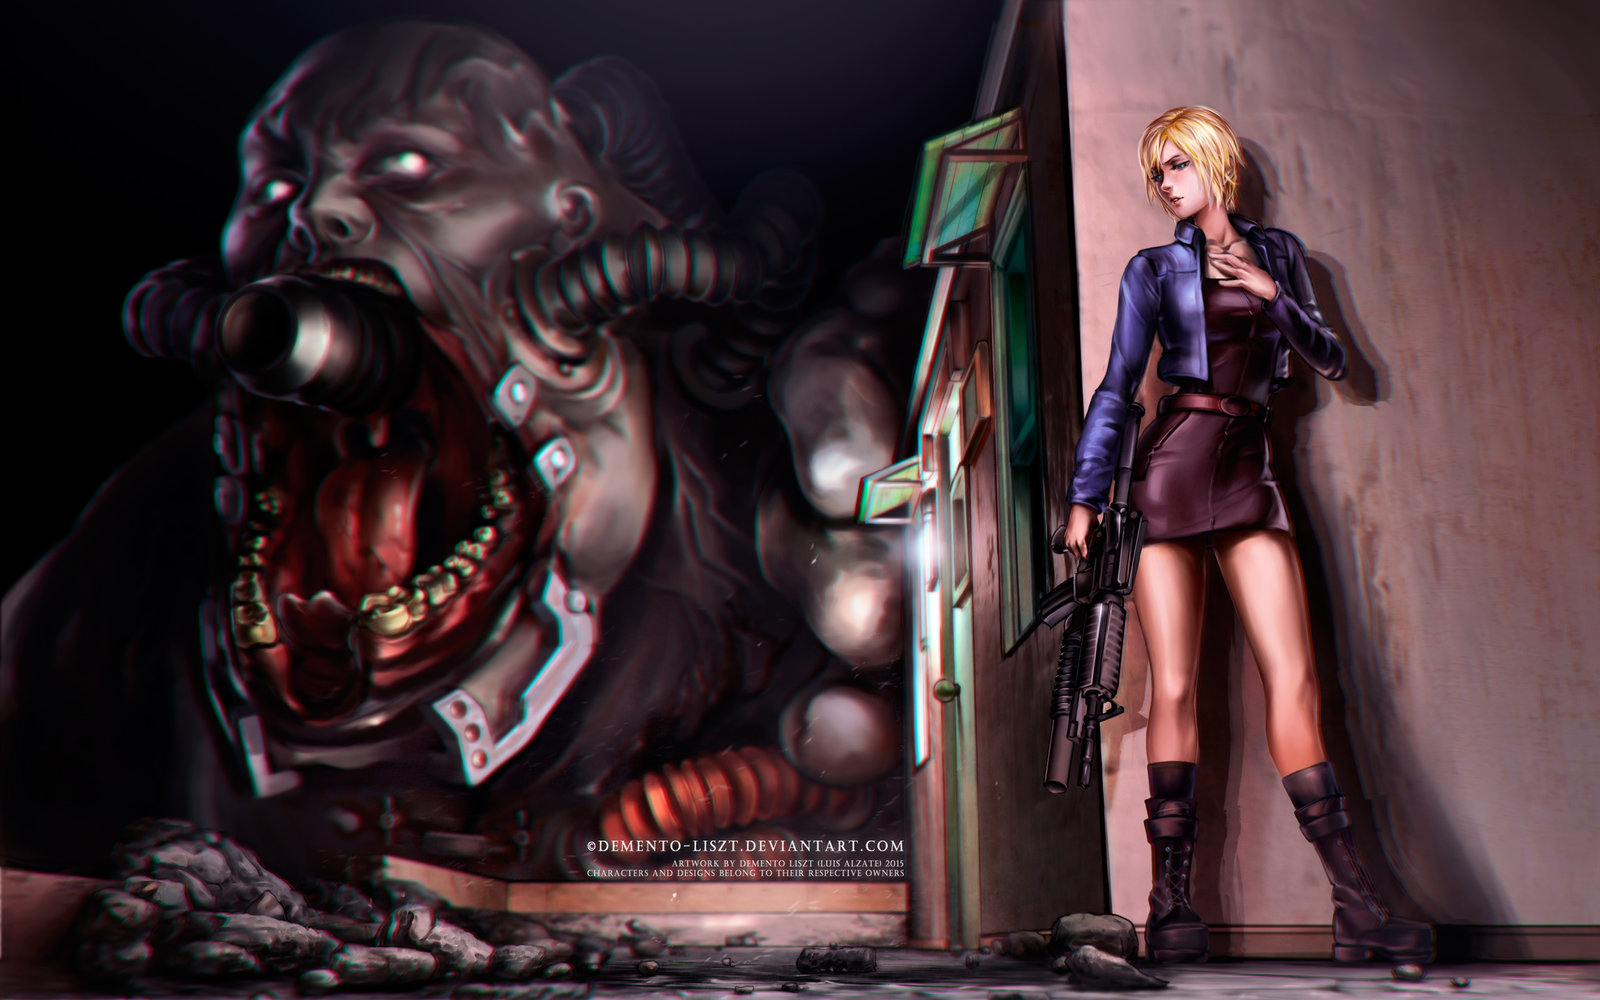 parasite_eve_2___battle_against_the_burner_by_demento_liszt-d8tddbn